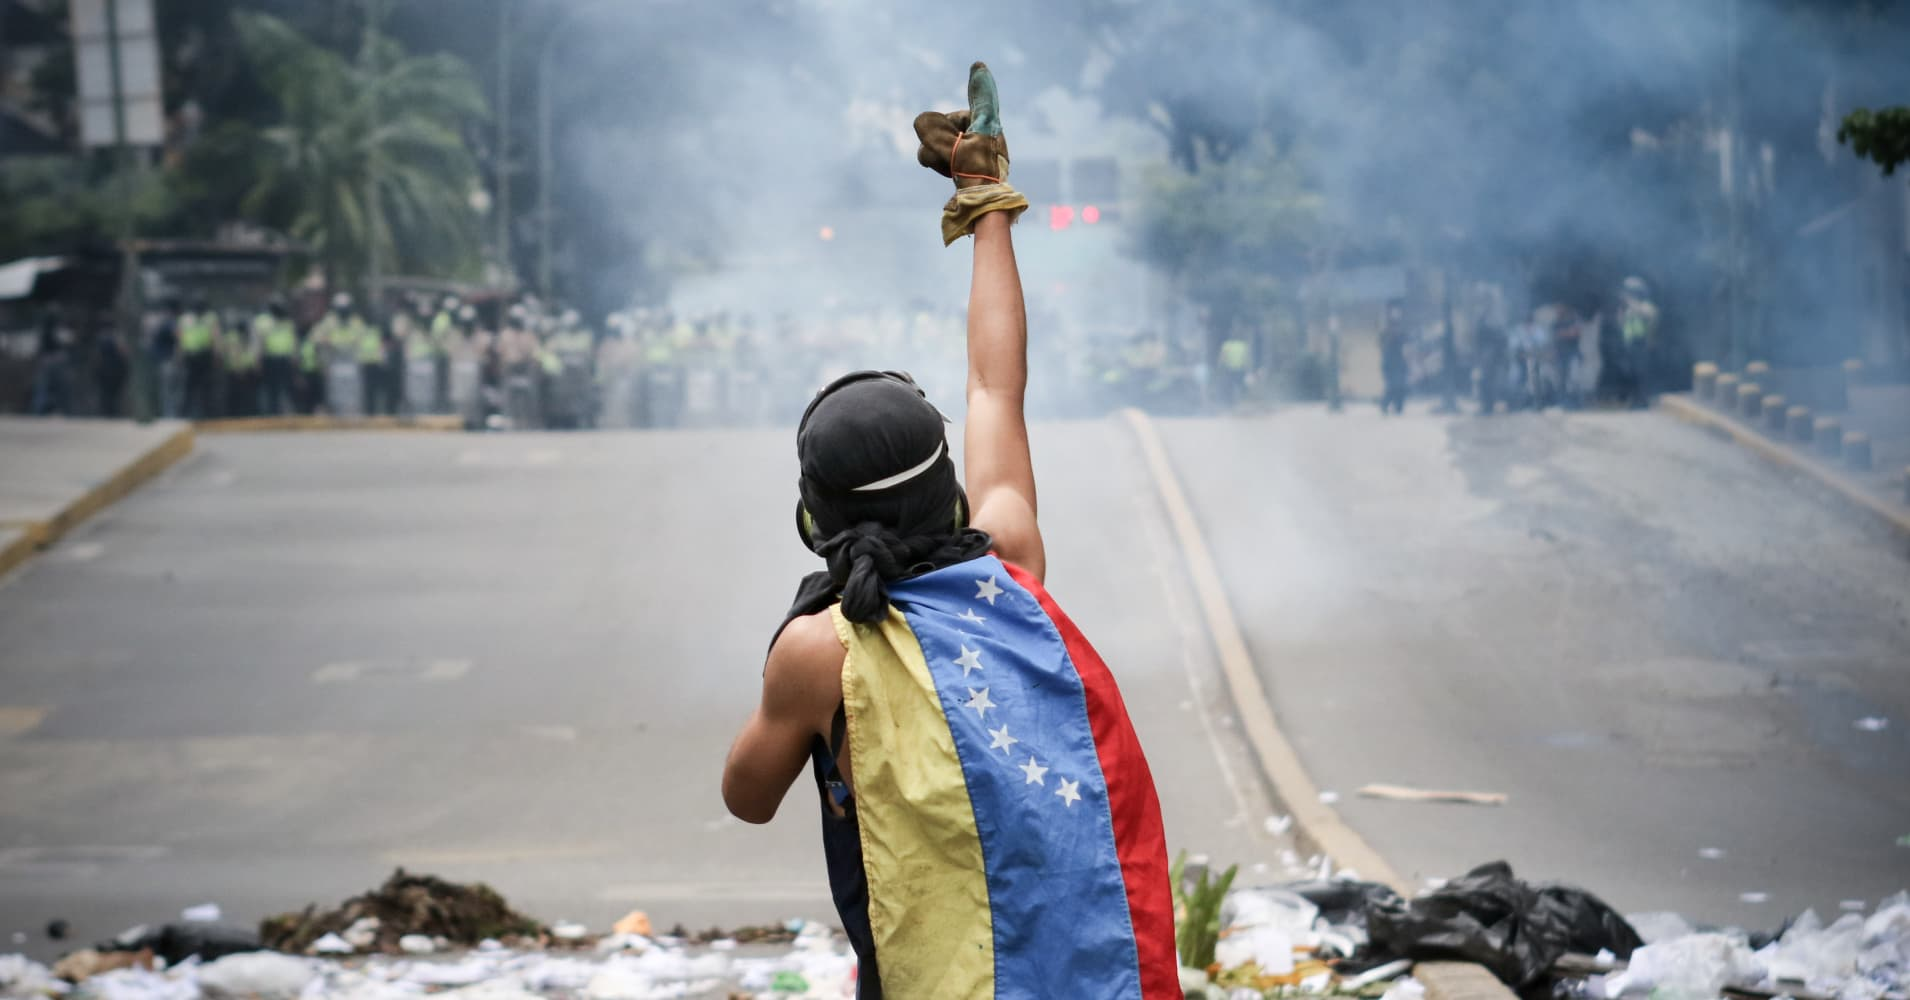 Germany, France, Spain poised to recognize Venezuela's Guaido